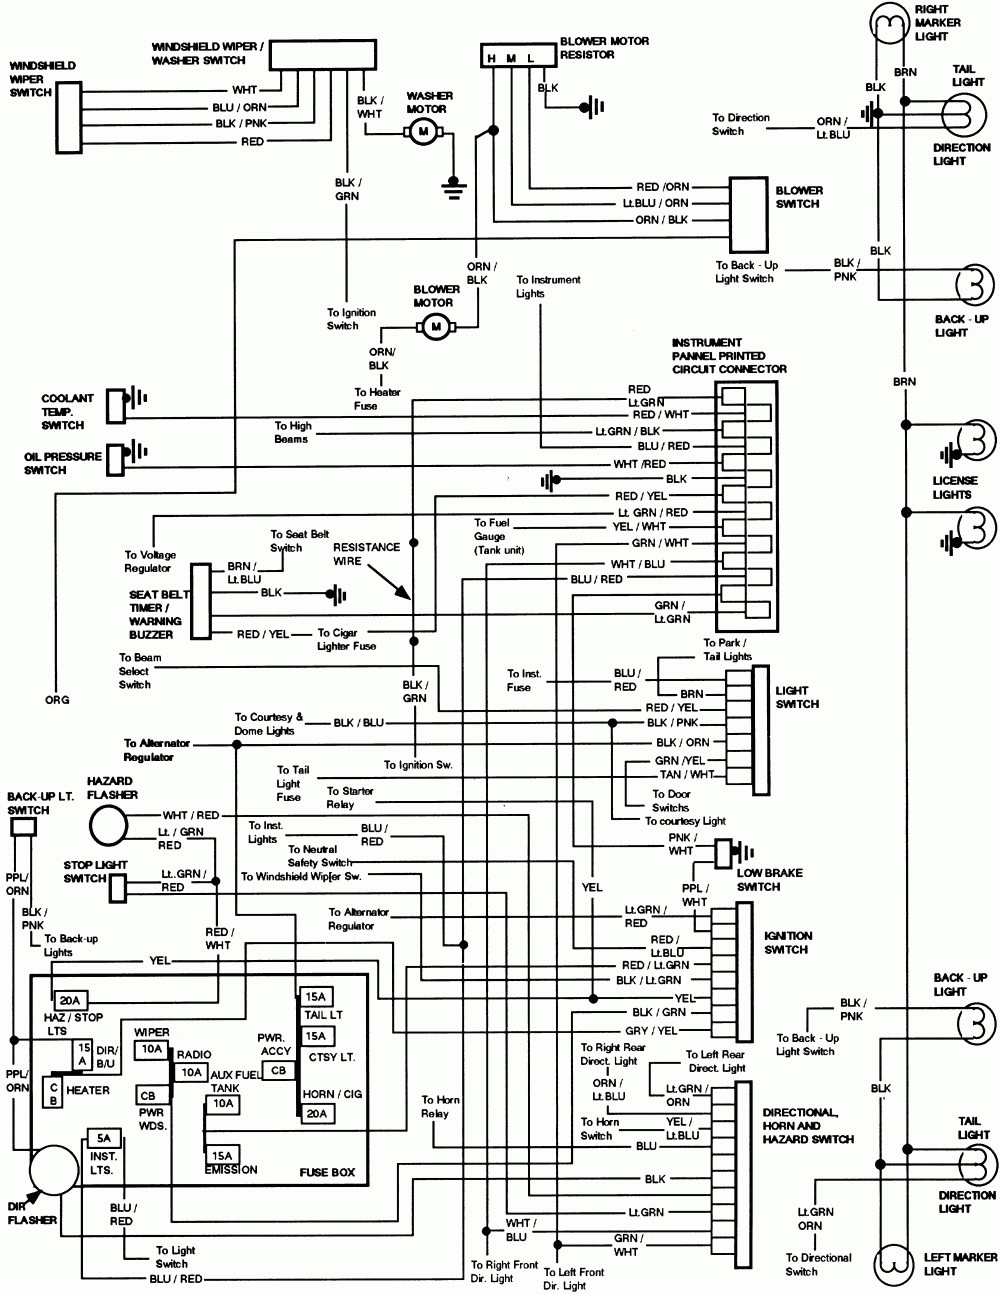 83 f100 wiring diagram help ford truck detailed wiring diagrams 95 ford  explorer engine diagram 1996